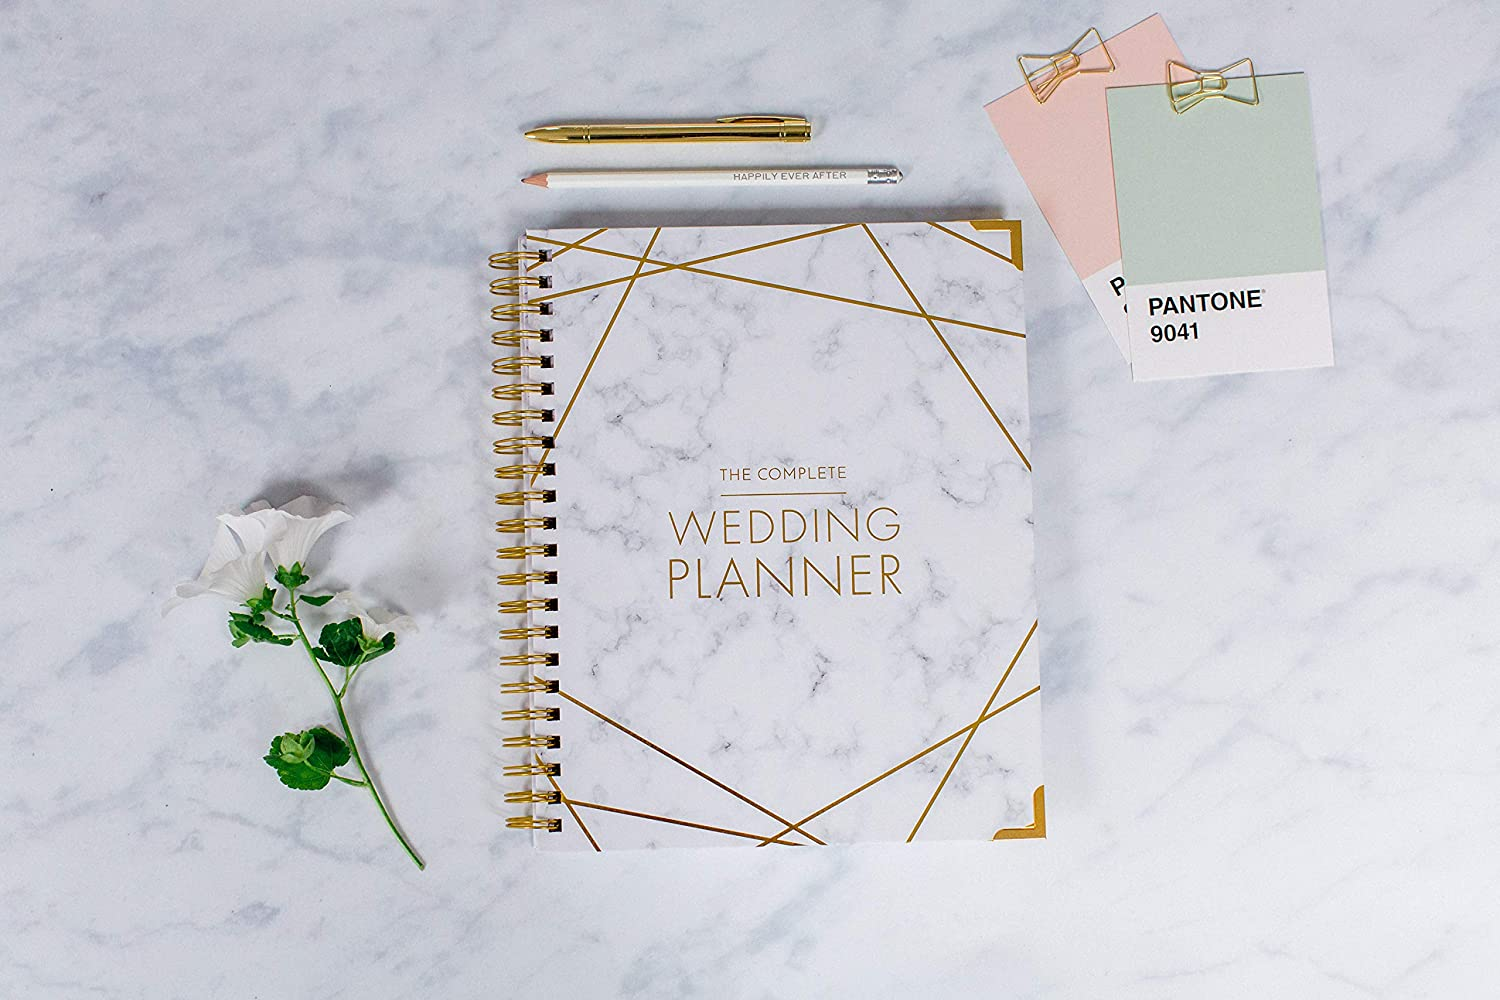 marble and gold wedding planning spiral book with single stem flower sitting to the left and pantone color swatches in the top right corner on marble surface